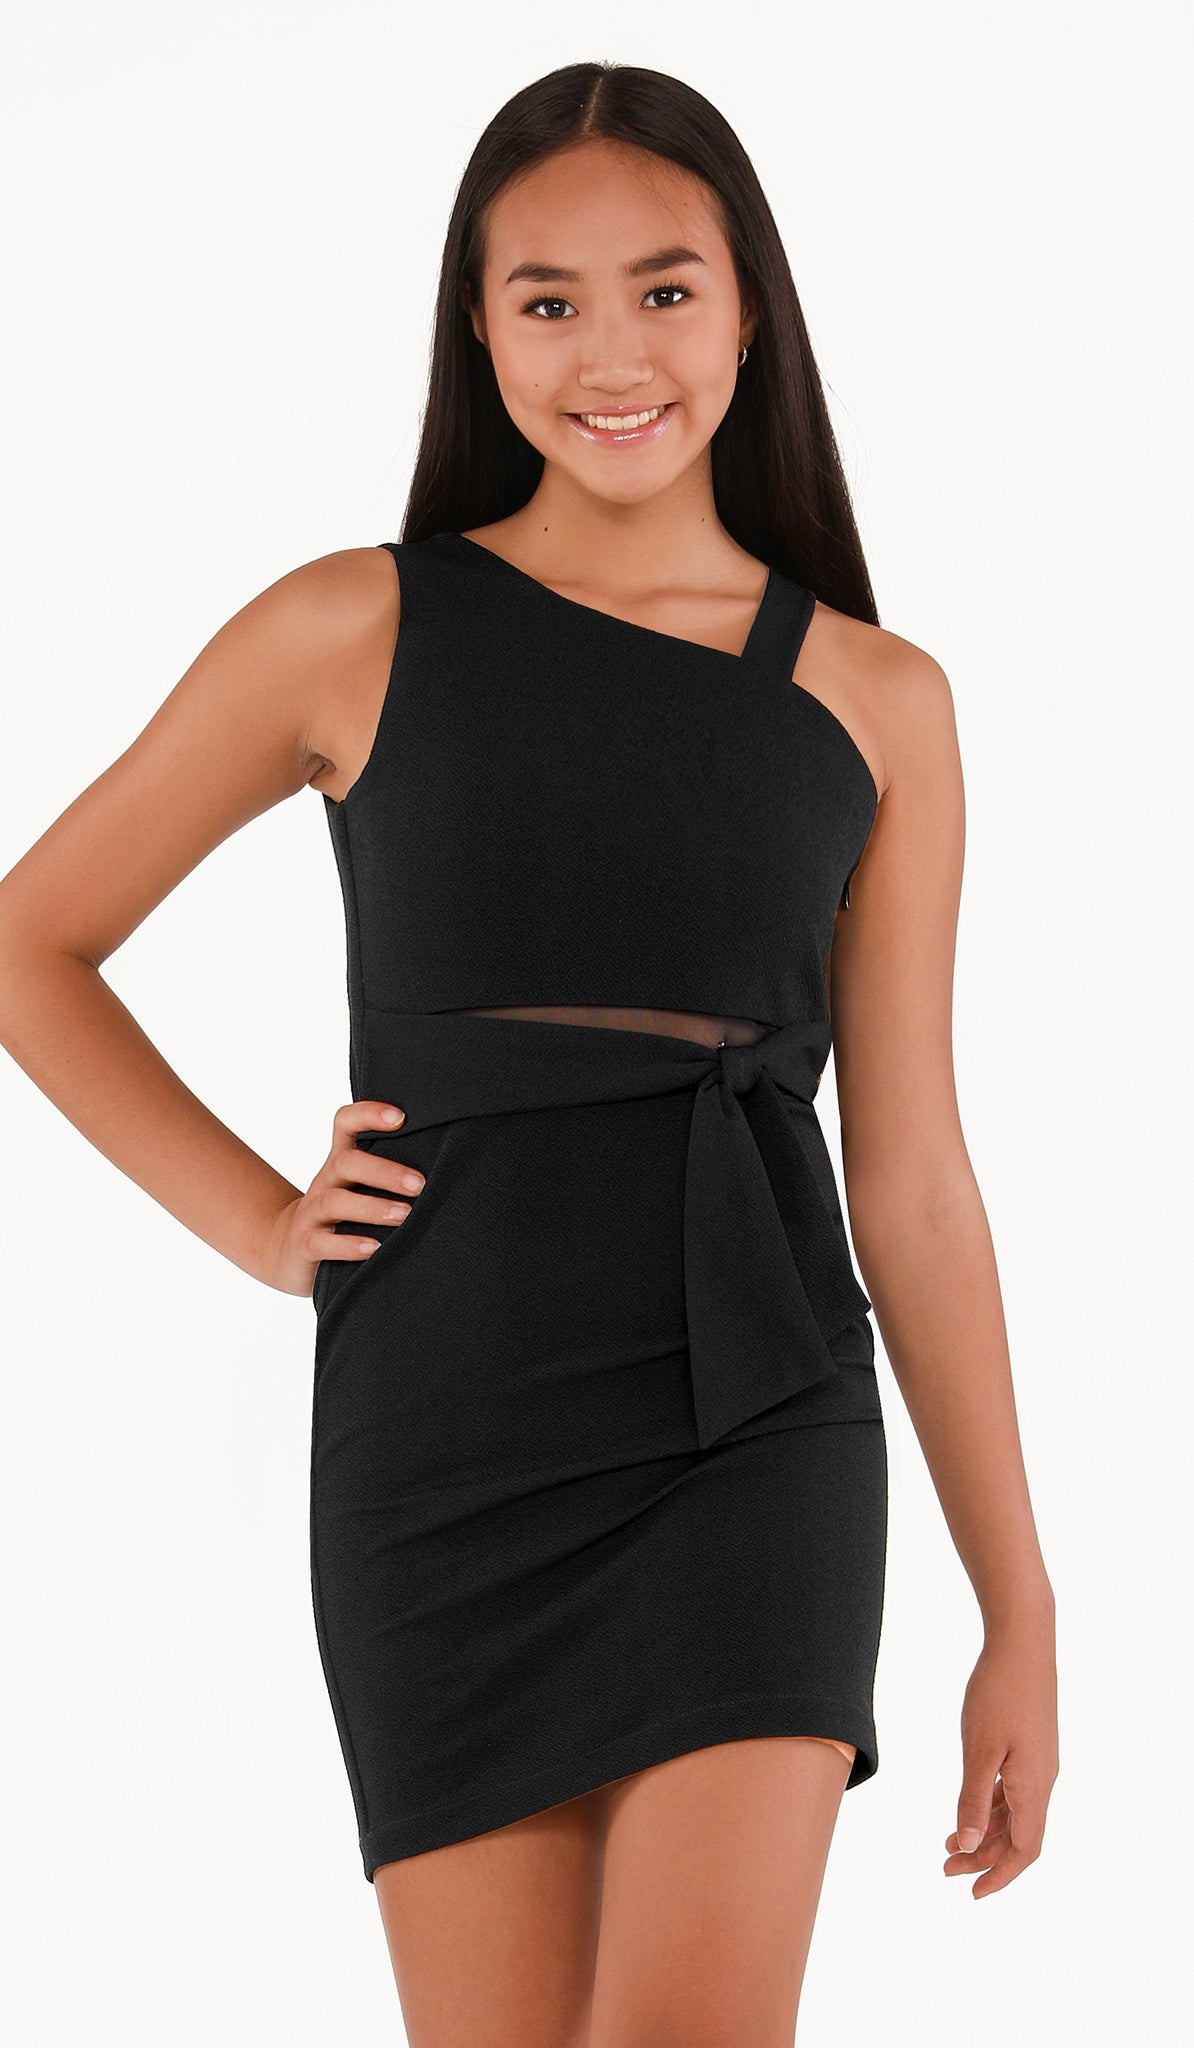 The Sally Miller Devin Dress | Black textured stretch knit bodycon dress with mesh illusion and ties at waist